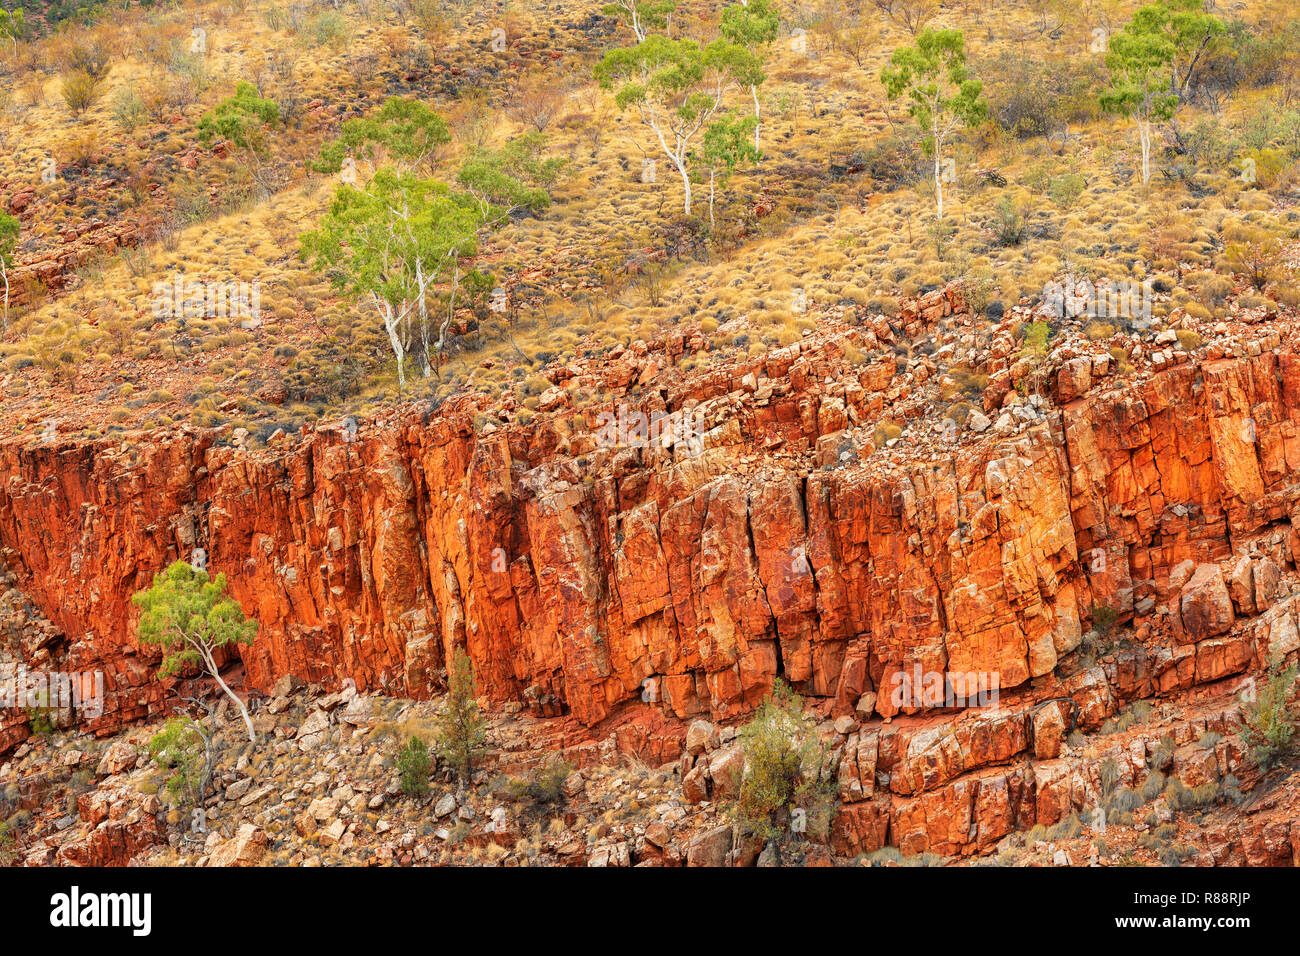 Rugged cliffs and Ghost Gums in Ormiston Gorge. - Stock Image